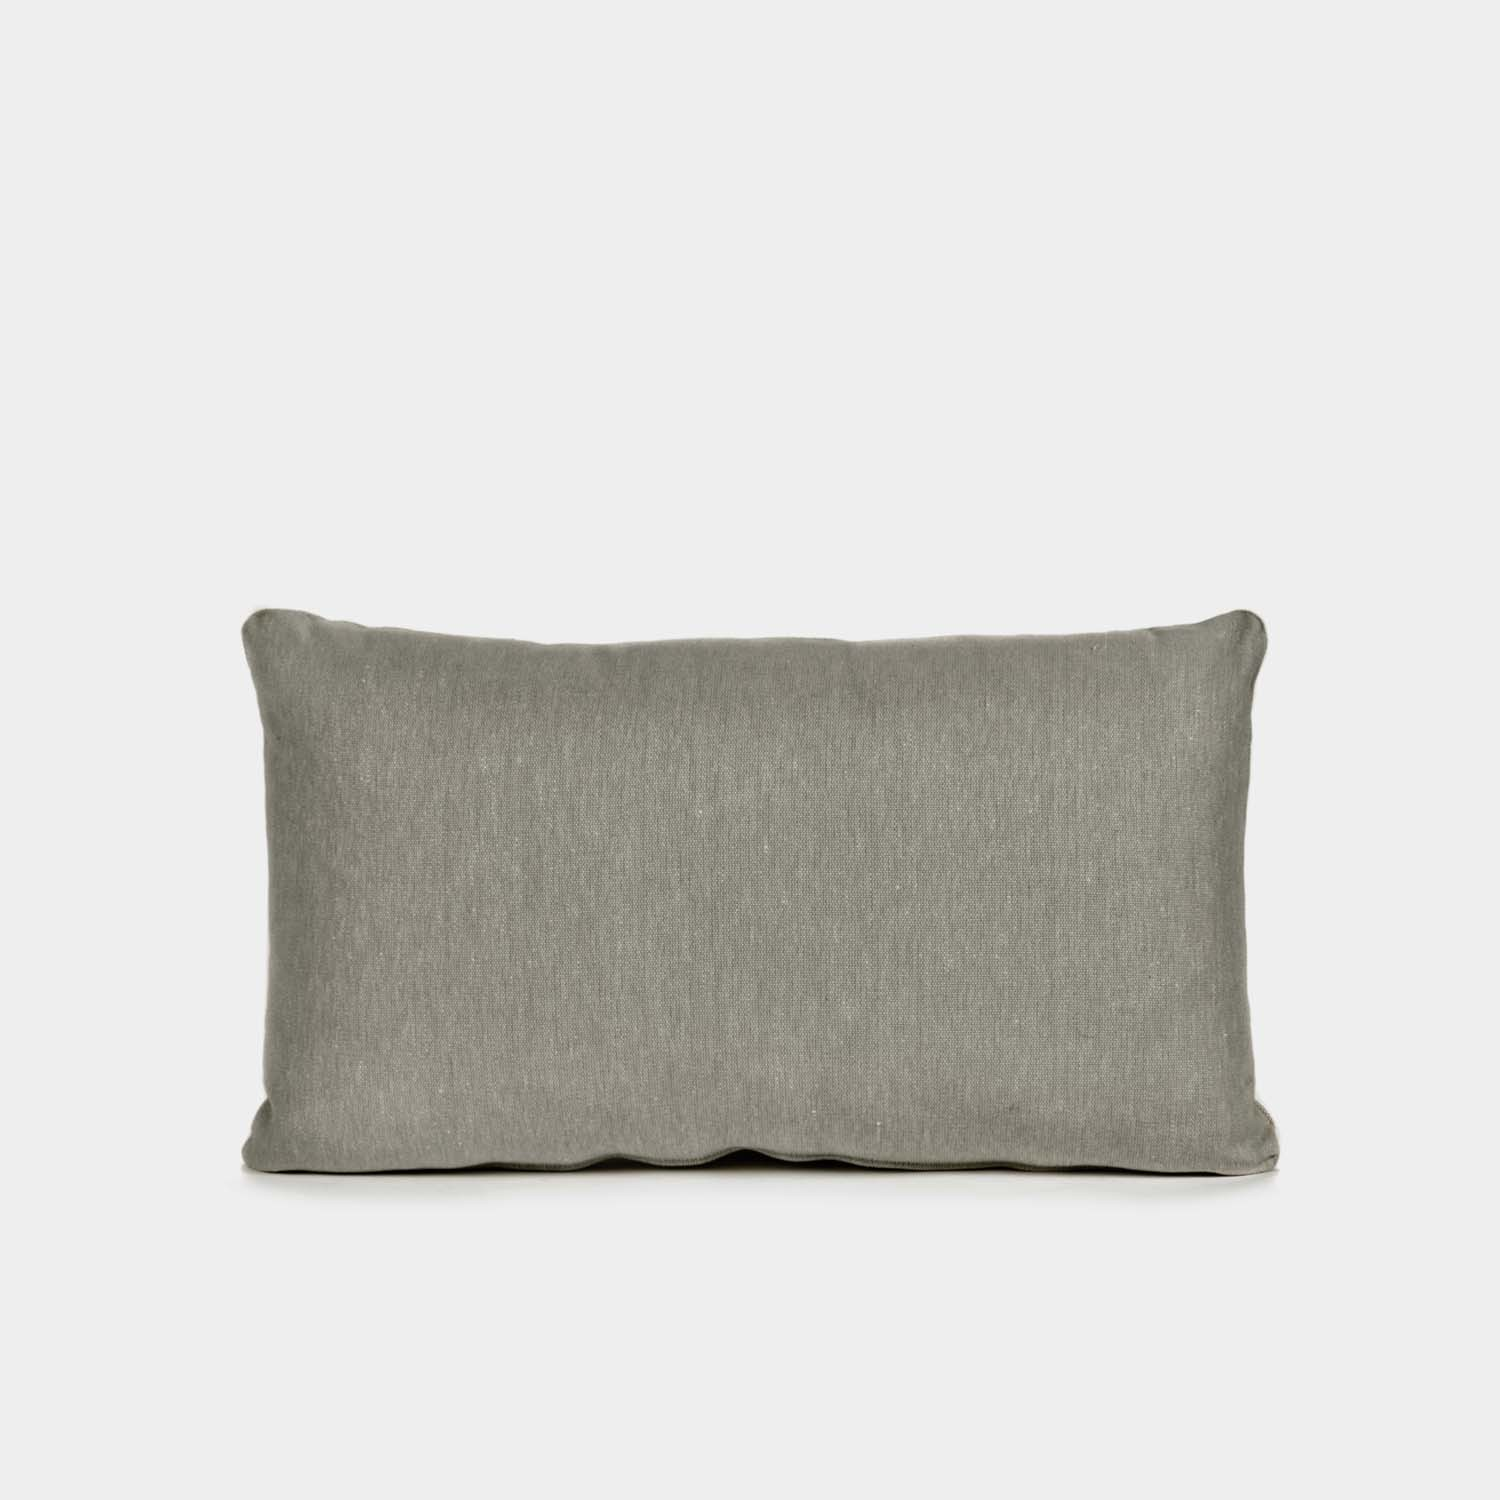 Decorative Cushion, Rectangular, Taupe Linen